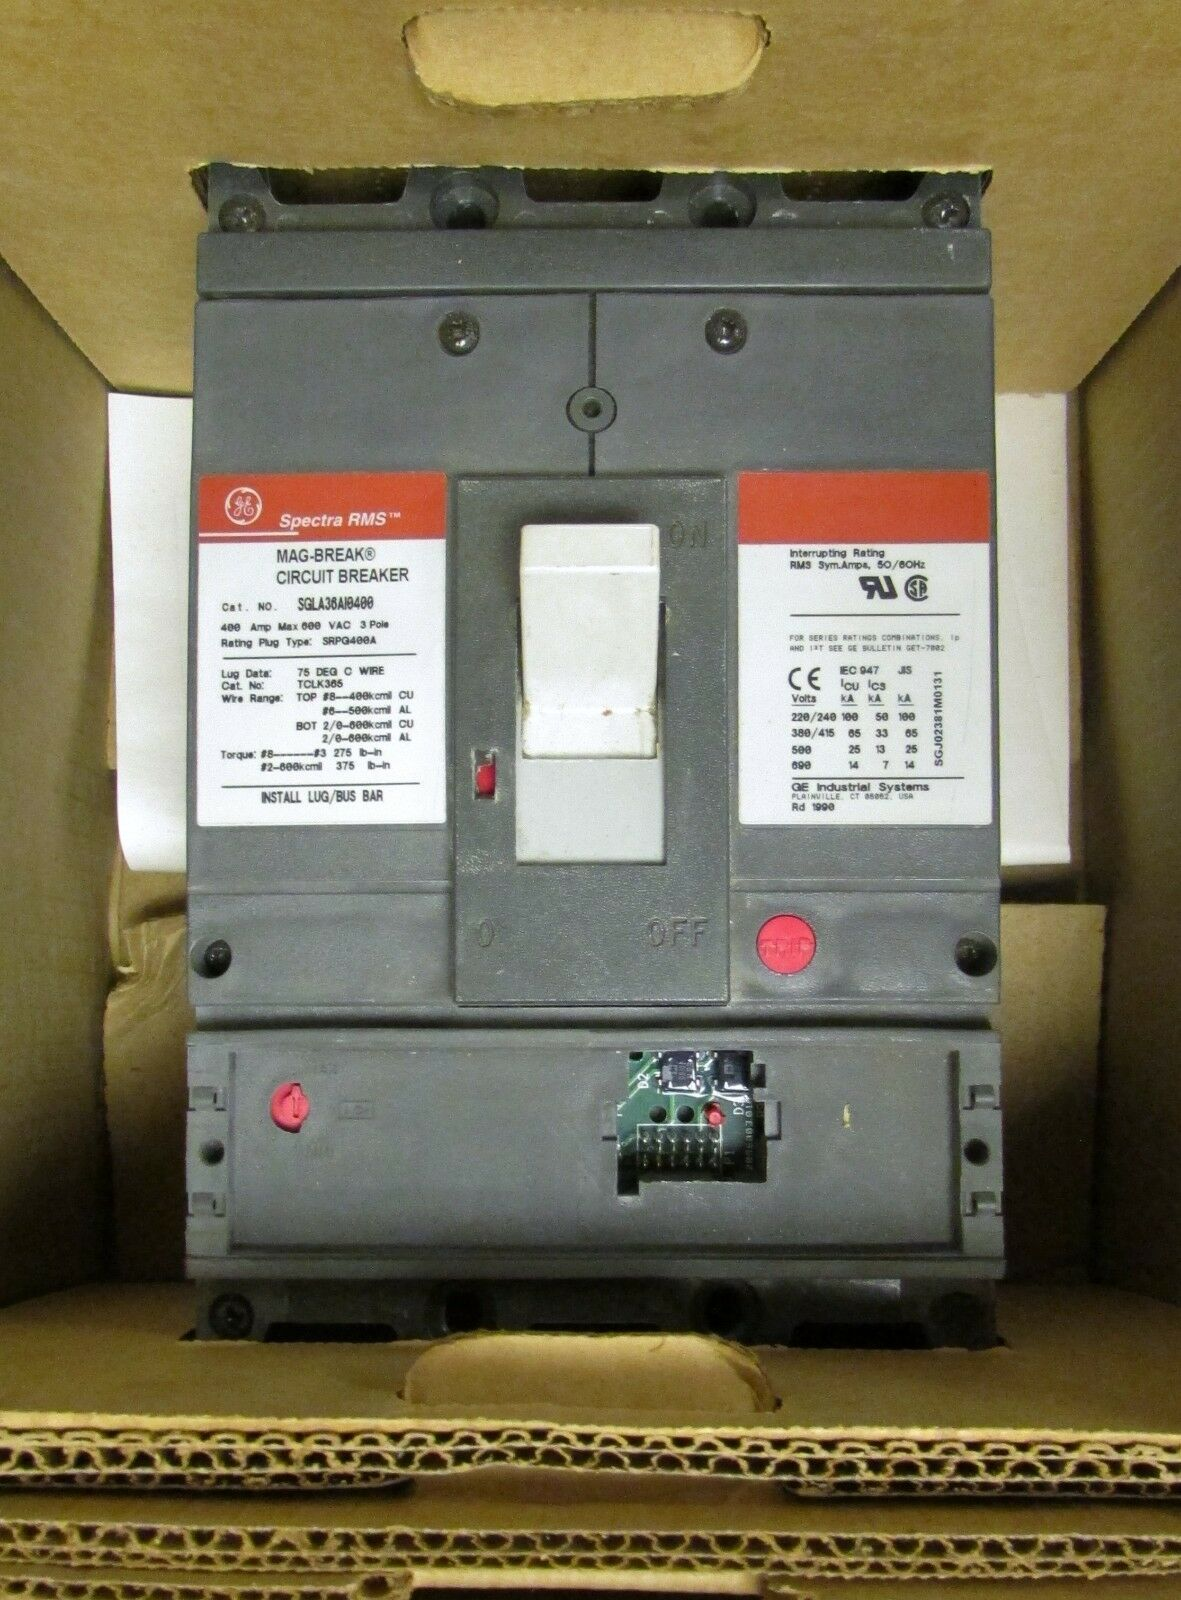 Ge Spectra Rms Mag Break Circuit Breaker 400 Amp 600 Vac 3 Pole Arc Fault Interrupter Afci Industrial Solutions Norton Secured Powered By Verisign